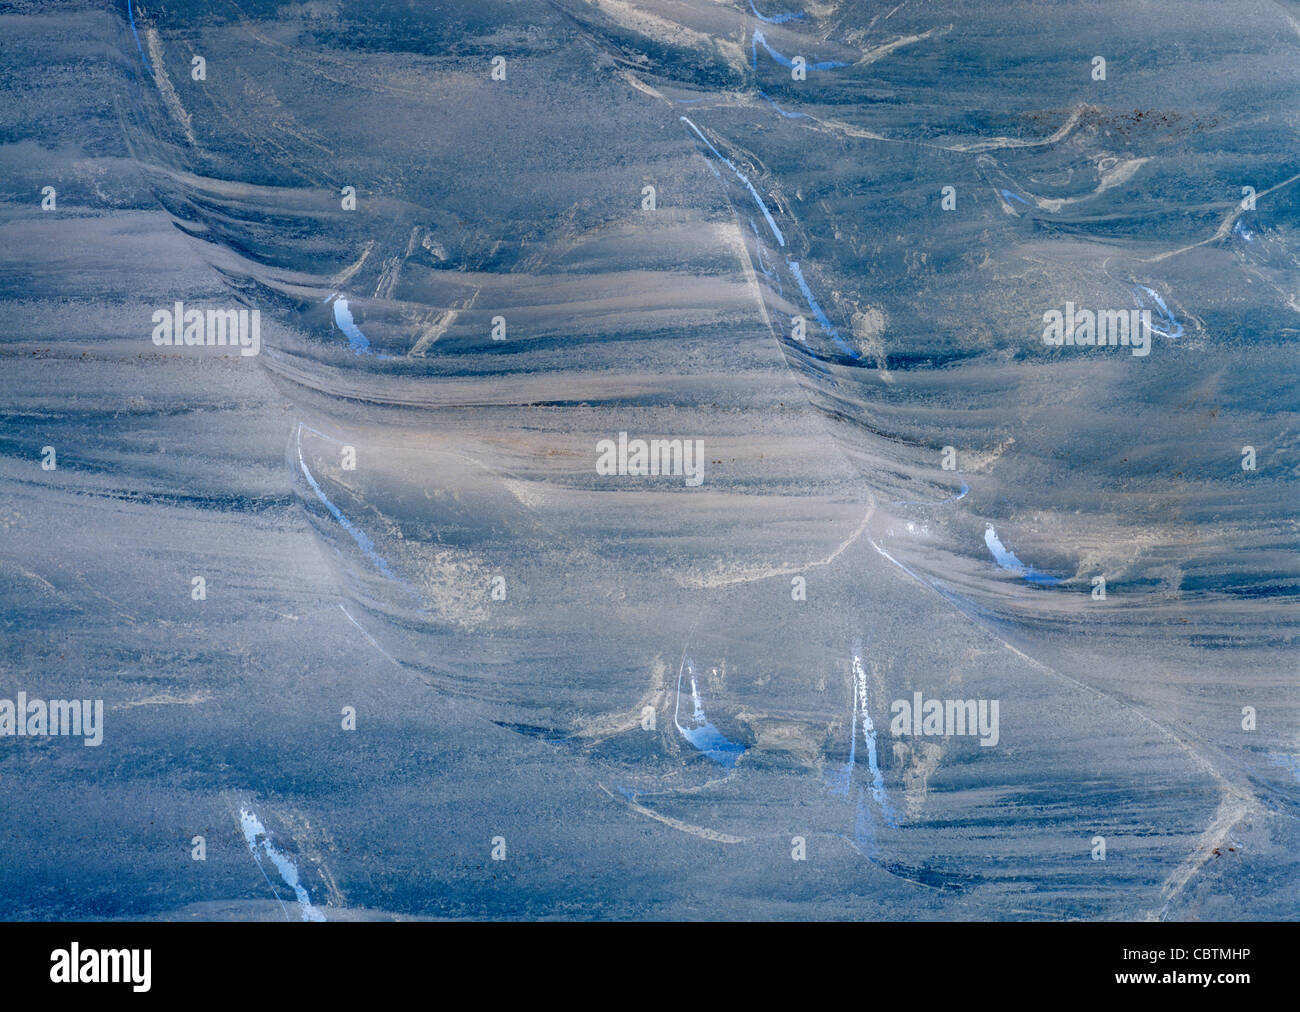 Bizarre and gorgeous ice structures inside the Glacier of the Lötschental Valley in Wallis Valais - Stock Image